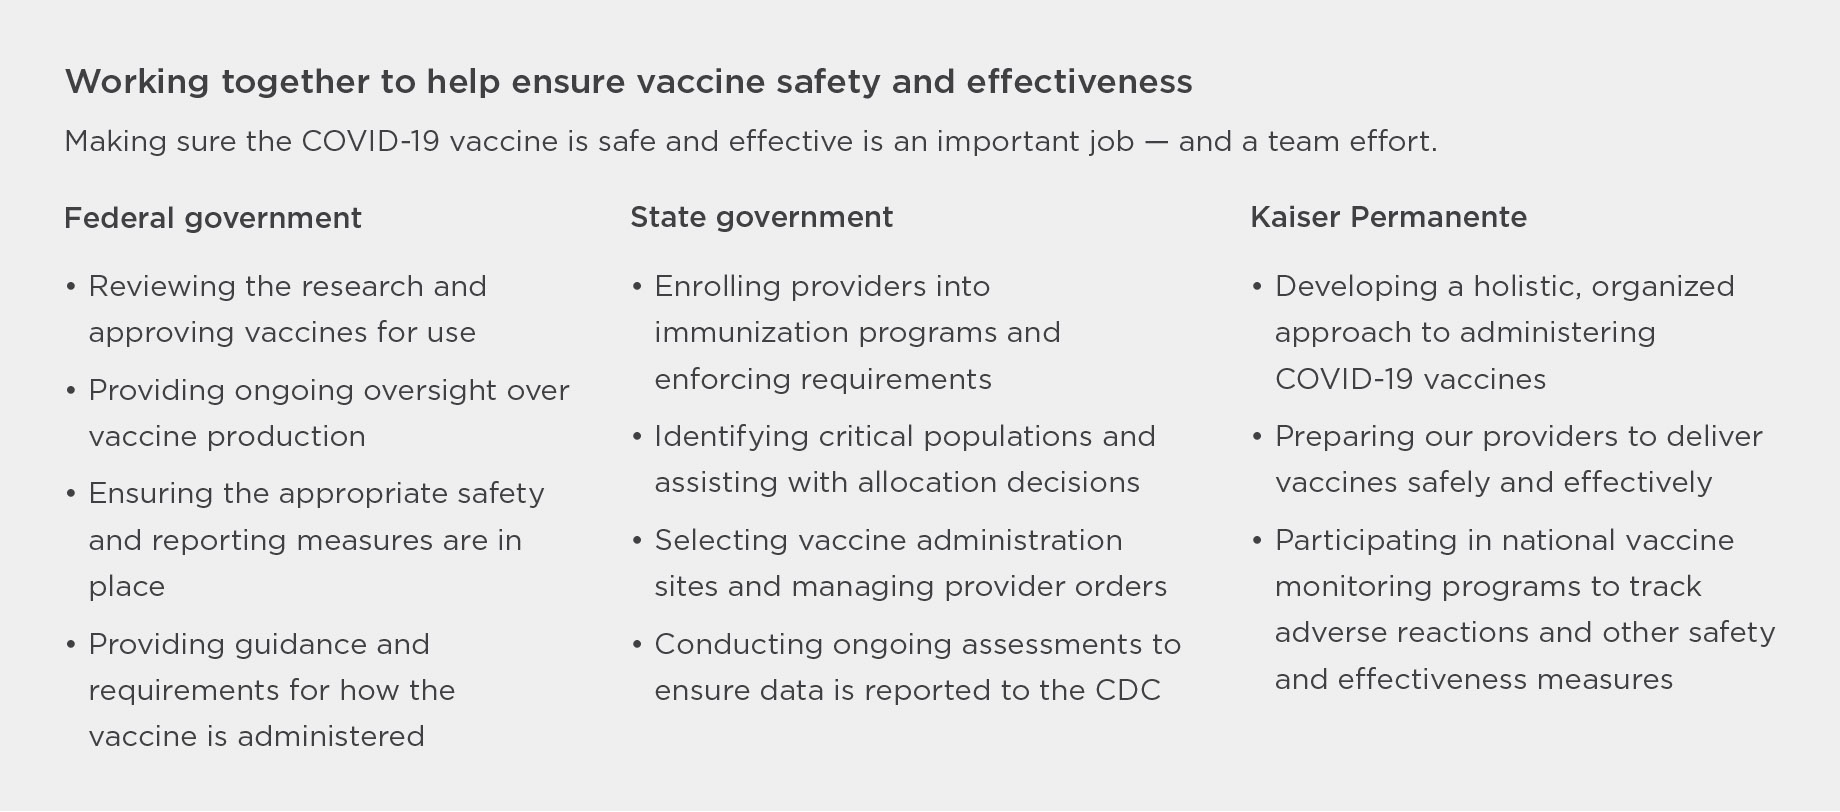 Working together to help ensure vaccine safety and effectiveness. Making sure the COVID-19 vaccine is safe and effective is an important job — and a team effort. Federal government: Reviewing the research and approving vaccines for use. Providing ongoing oversight over vaccine production. Ensuring the appropriate safety and reporting measures are in place. Providing guidance and requirements for how the vaccine is administered. State government: Enrolling providers into immunization programs and enforcing requirements. Identifying critical populations and assisting with allocation decisions. Selecting vaccine administration sites and managing provider orders. Conducting ongoing assessments to ensure data is reported to the CDC. Kaiser Permanente: Developing a holistic, organized approach to administering COVID-19 vaccines. Preparing our providers to deliver vaccines safely and effectively. Participating in national vaccine monitoring programs to track adverse reactions and other safety and effectiveness measures.